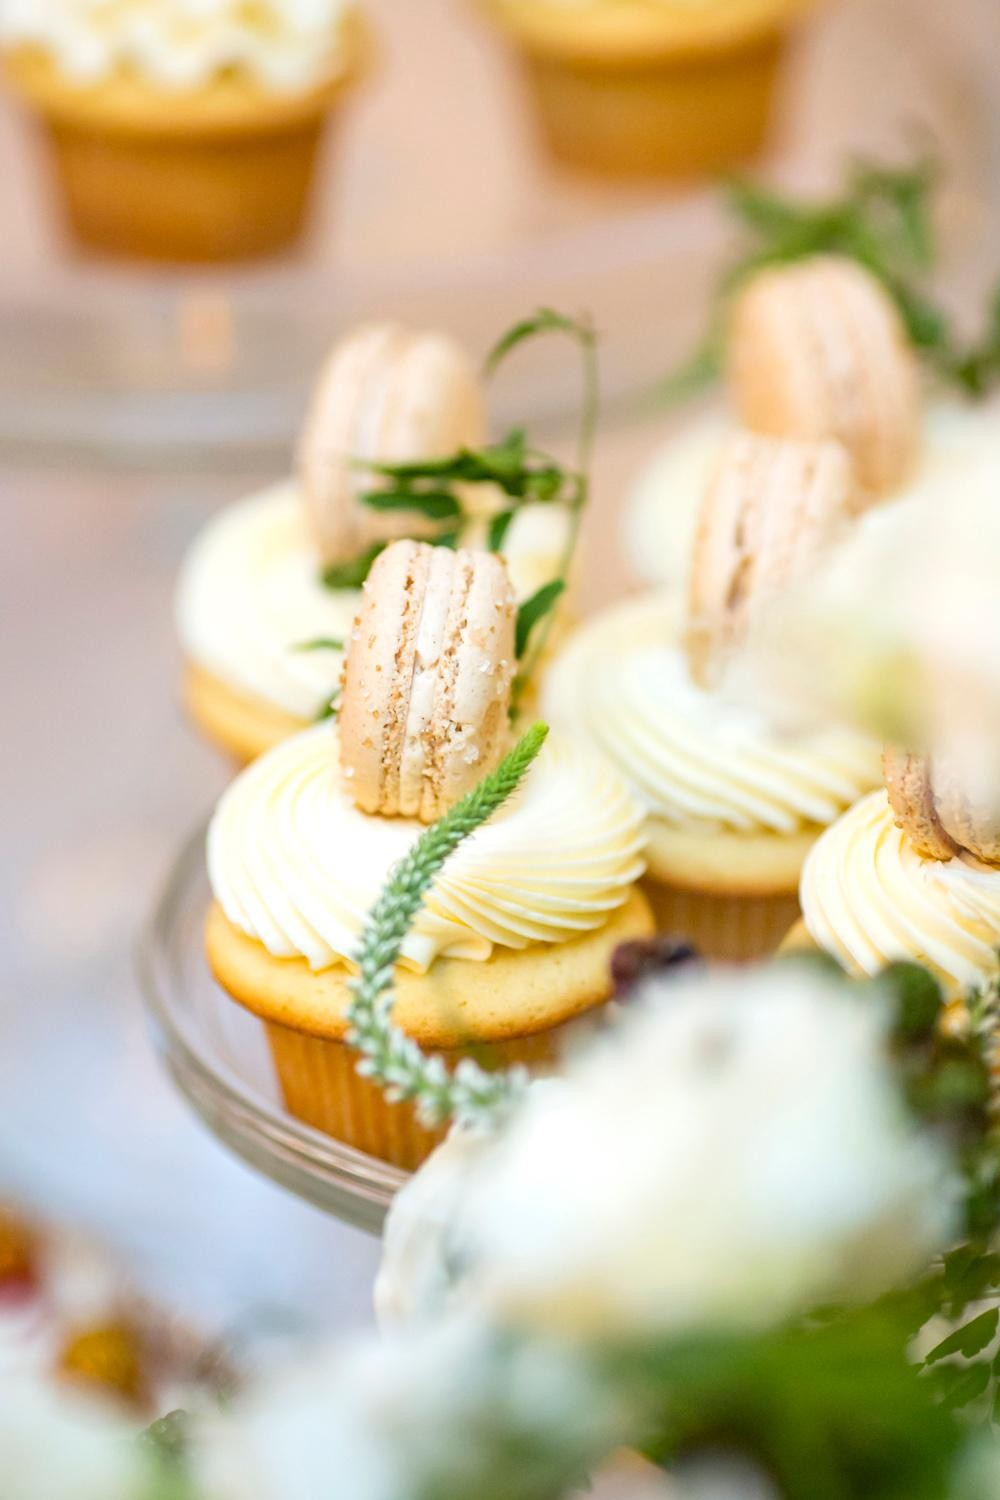 Vanilla Vanilla Cupcakes topped with Cinnamon Toast Macarons are on display for guests of the VIP Wedding Tasting at Trophy Cupcakes at the Bravern. Guests of the tasting were able to try the delectable cupcakes, 6-inch cakes, macarons, meringues, and other goodies on display while sipping champagne. (Sy Bean / Seattle Refined)<p></p>